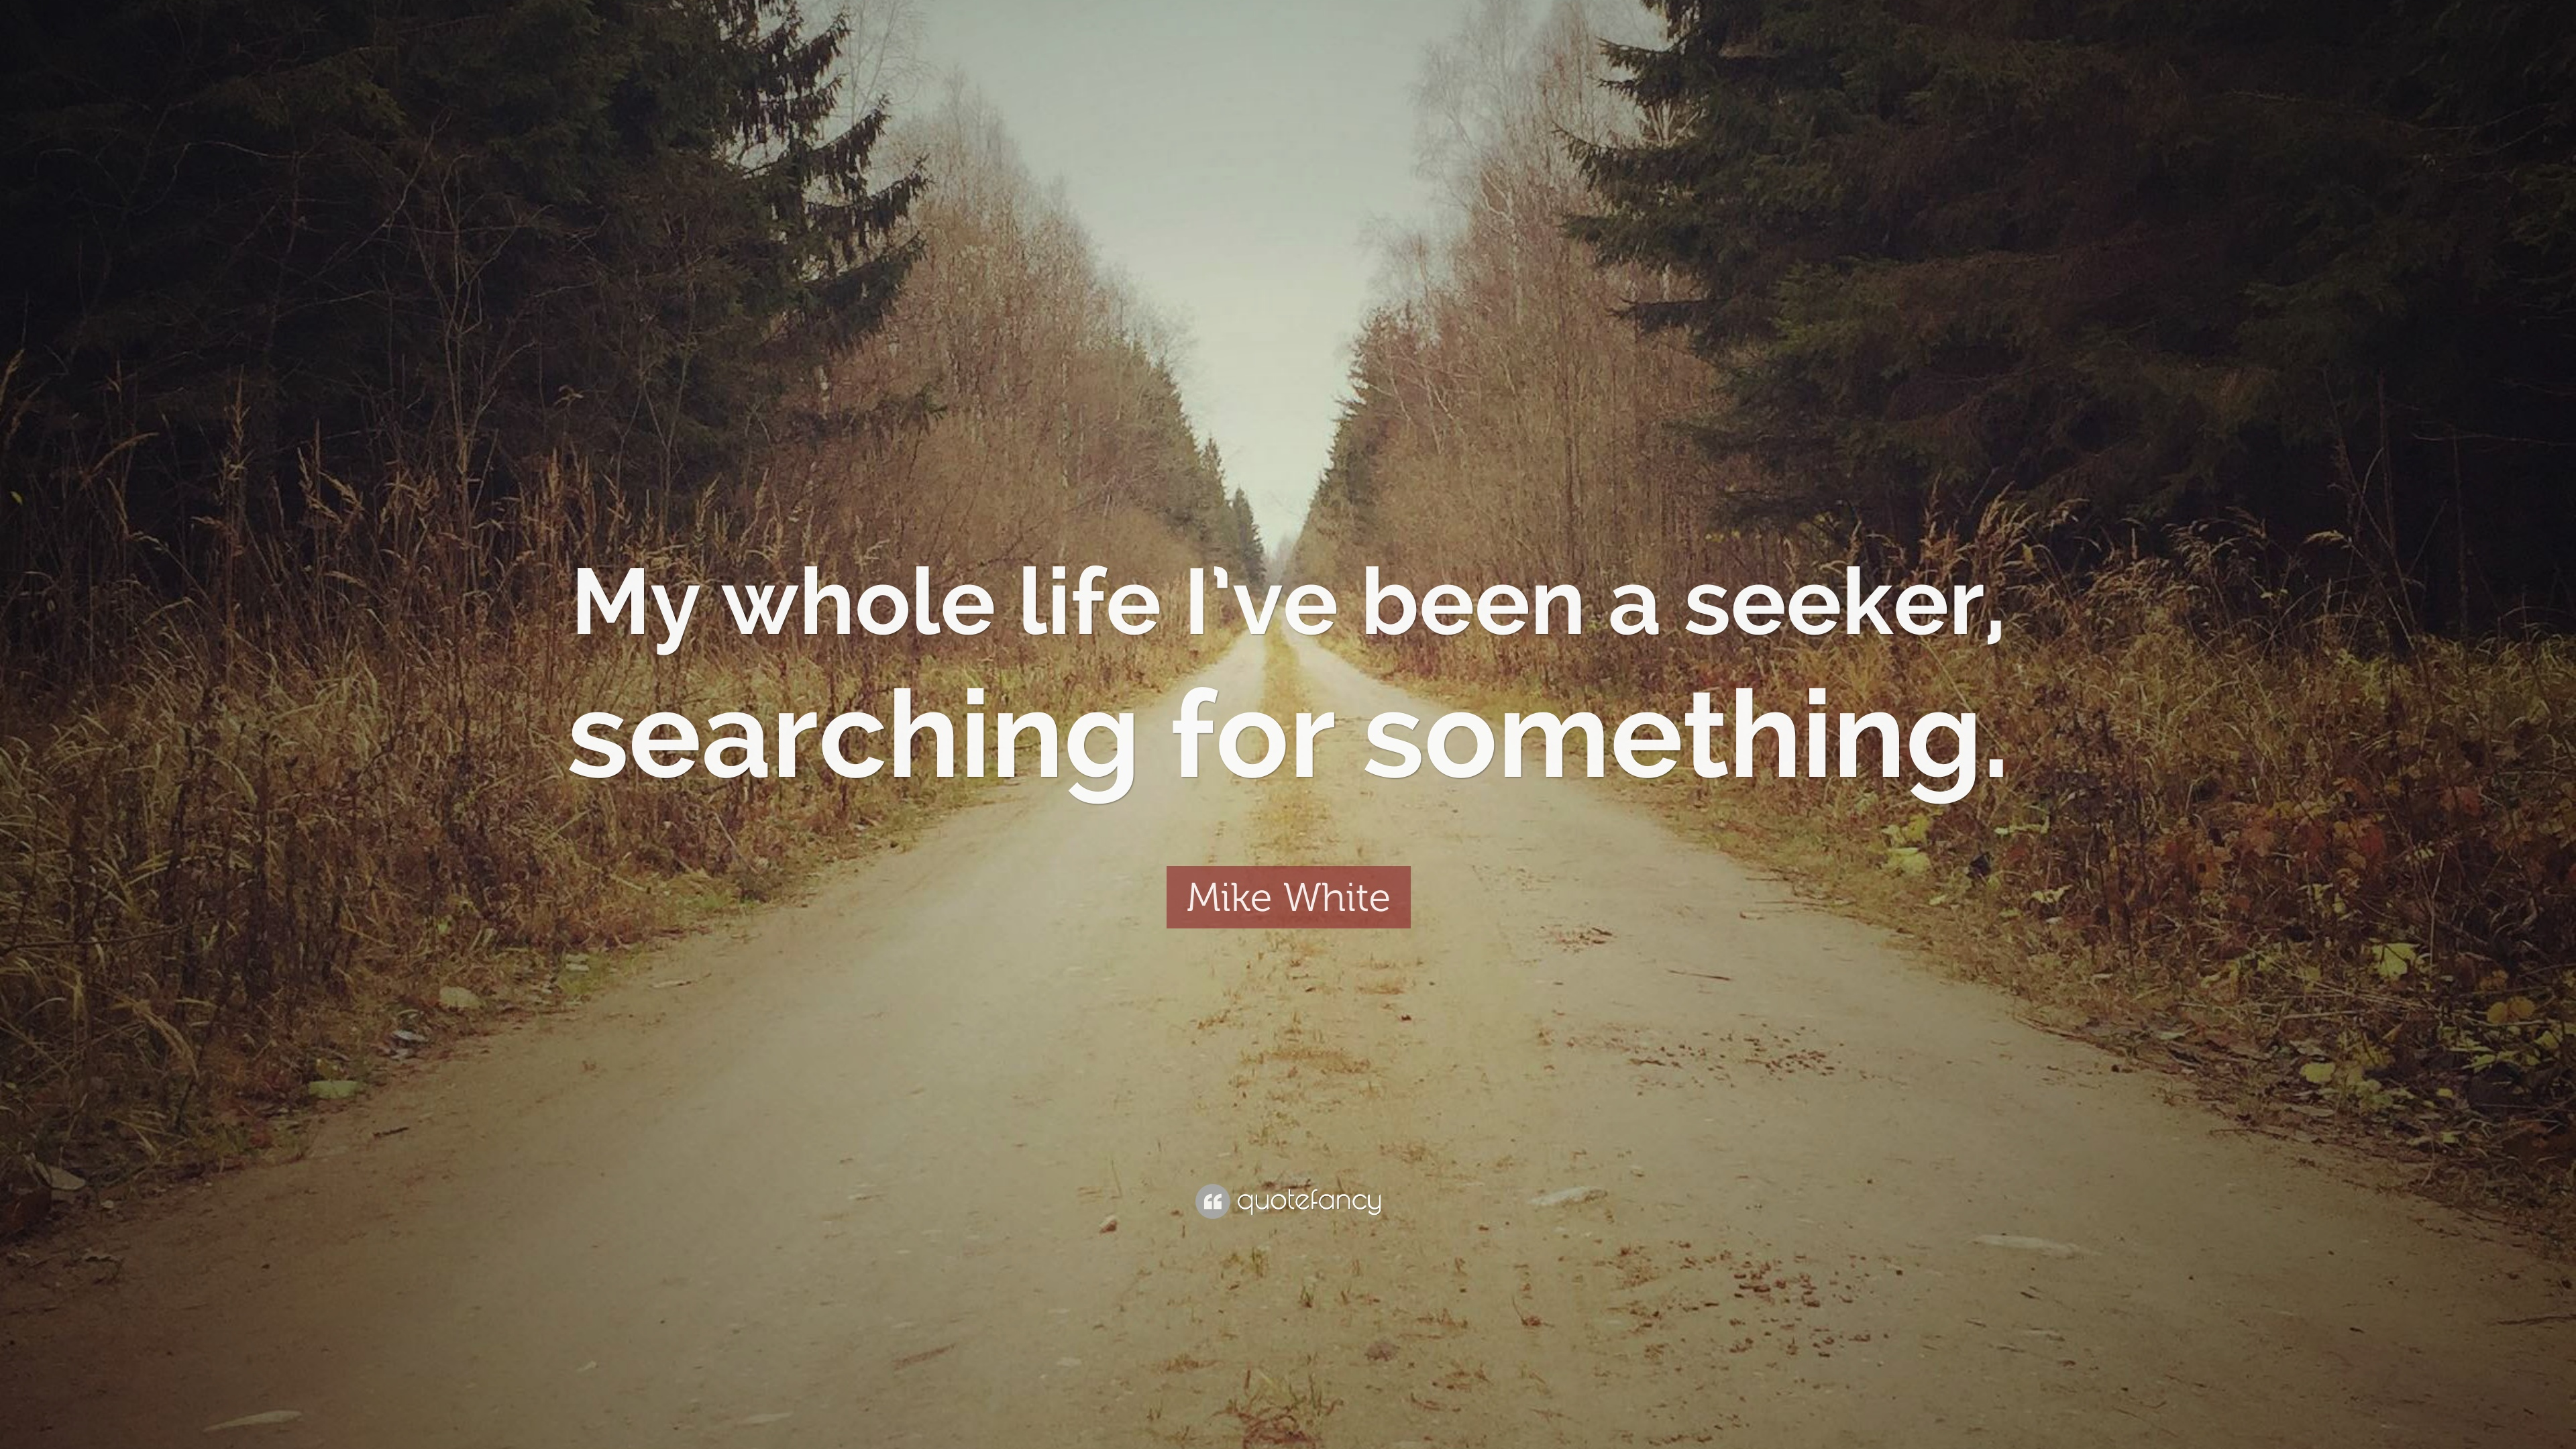 All my life i ve been searching for something